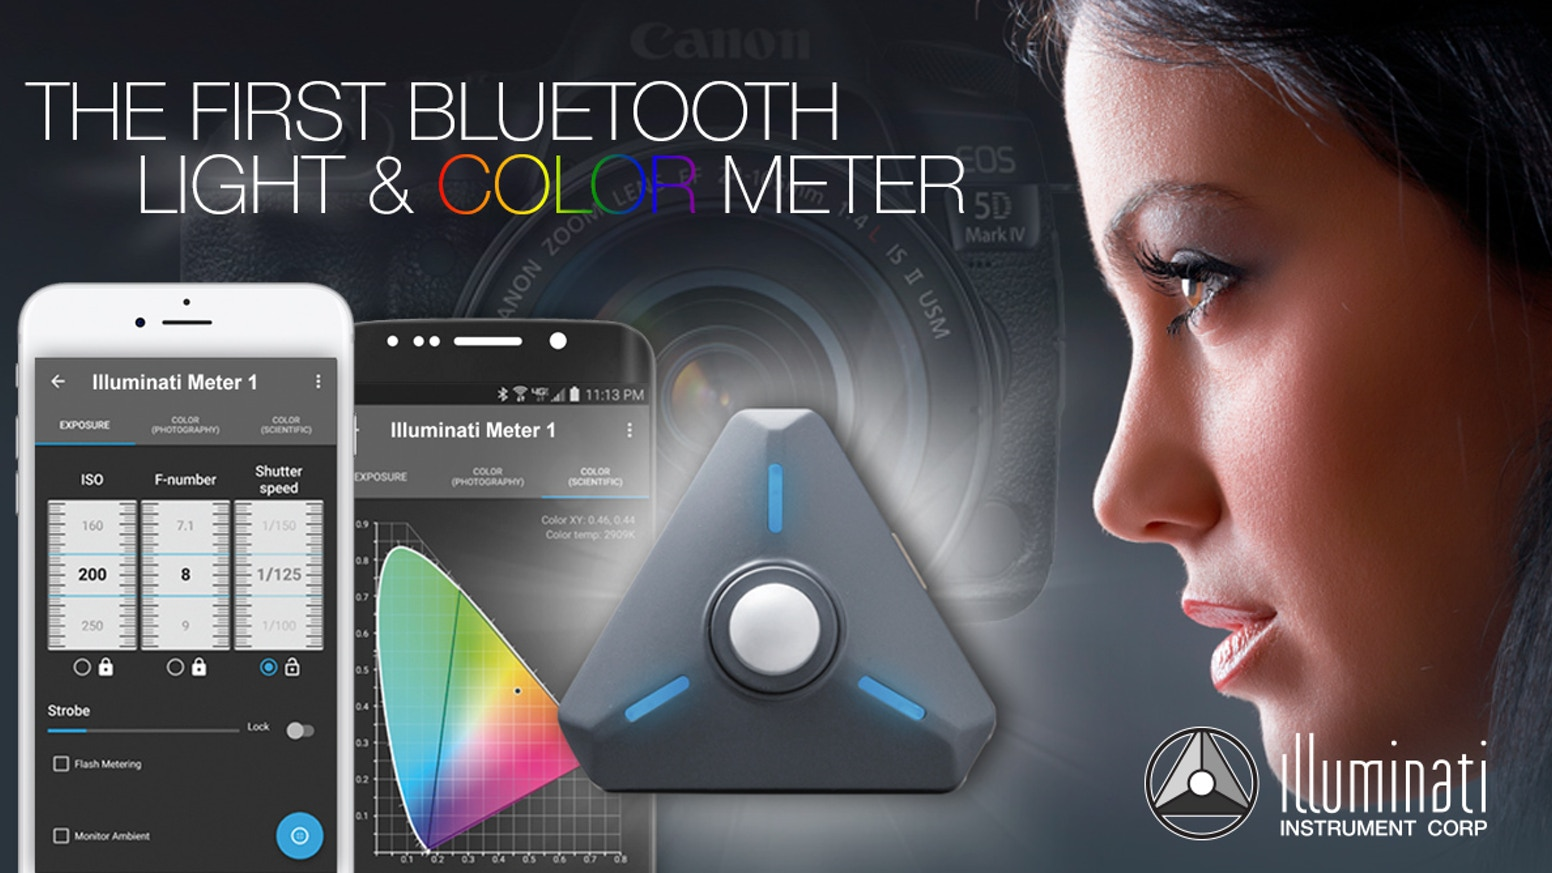 The Illuminati meter is a wireless, smartphone-connected light and color ambient and strobe meter for photography and filmmaking.